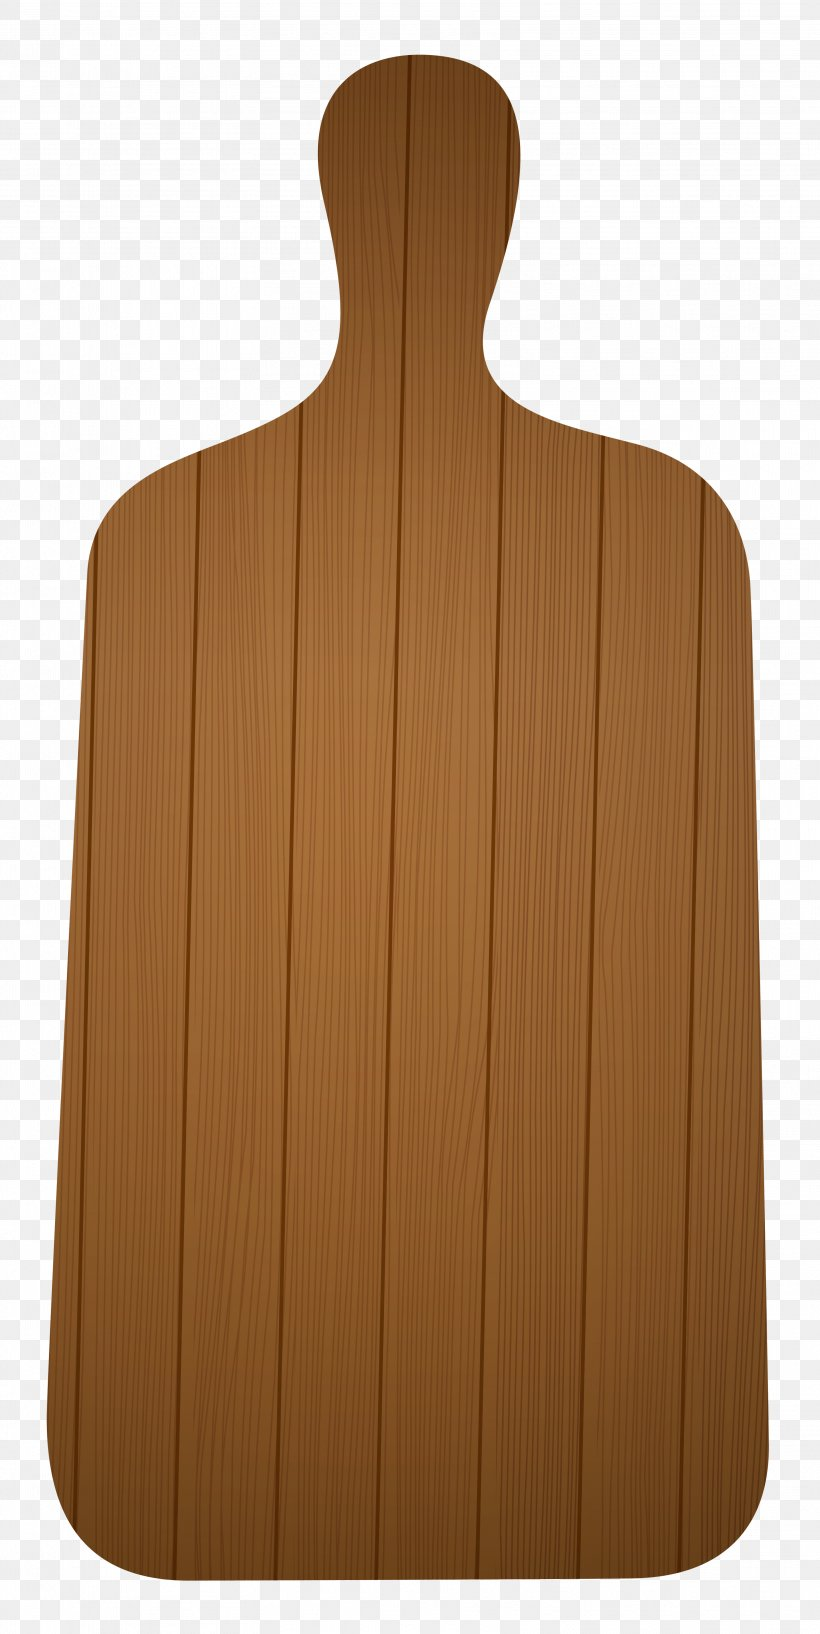 Cutting Boards Wood Clip Art, PNG, 3218x6416px, Cutting.